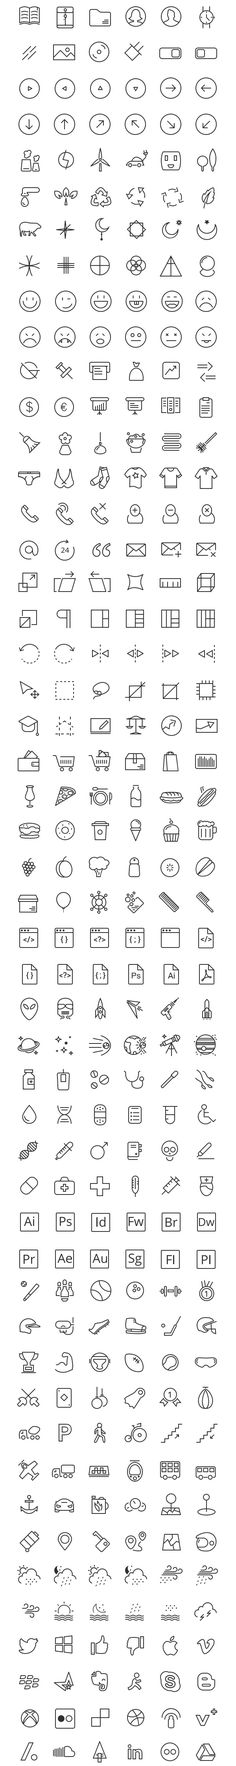 Here's a new set of 300 free icons from RetinaIcon collection made available exclusively for GraphicBurger. Web Design, Icon Design, Logo Design, Graphic Design, Symbol Design, Identity Design, Icones Cv, Ios Icon, Icon Collection